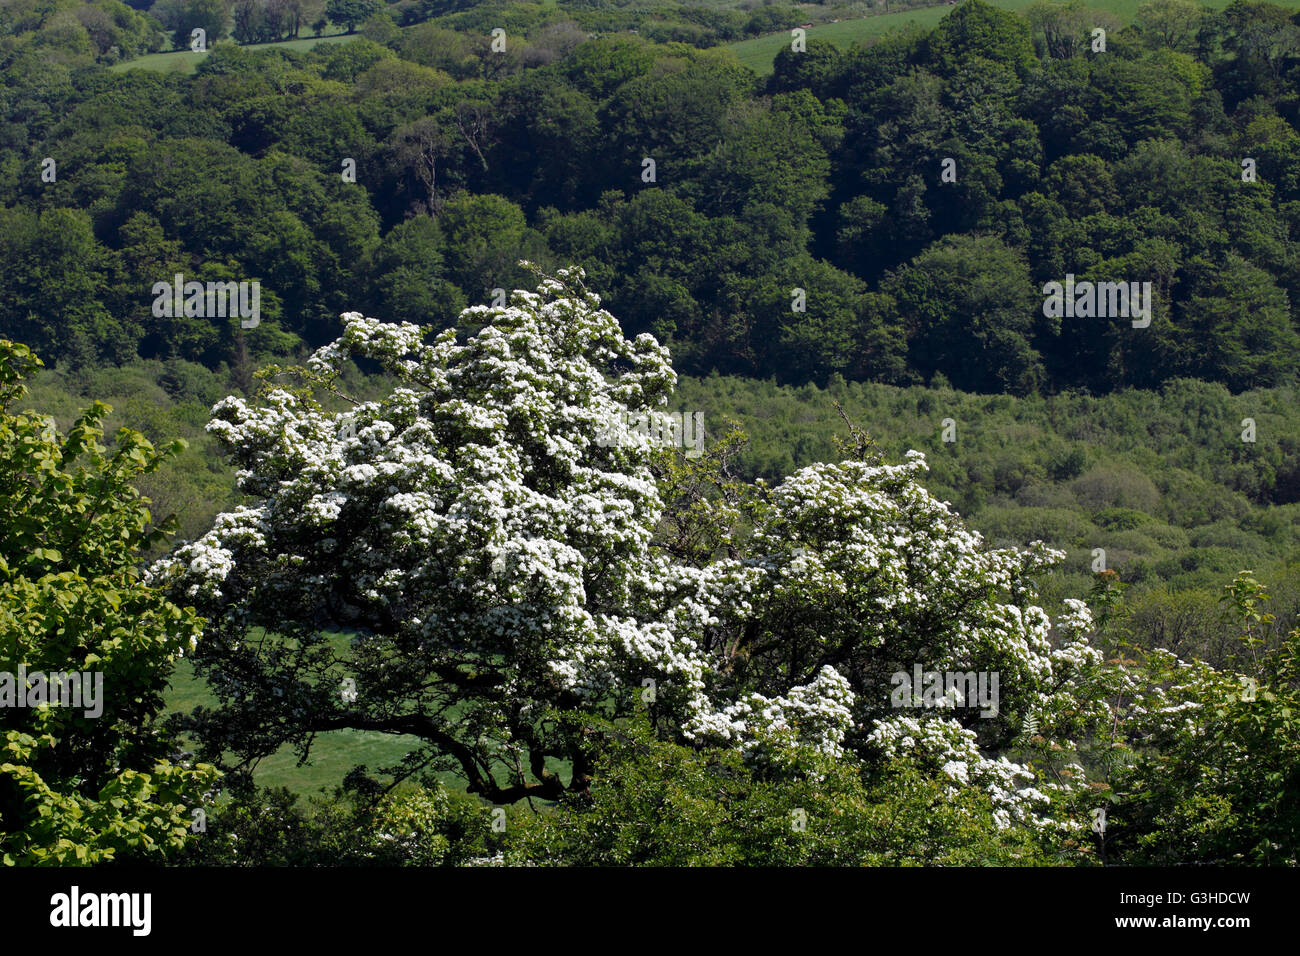 Hawthorn tree or bush set amongst other green woodland plants - Stock Image